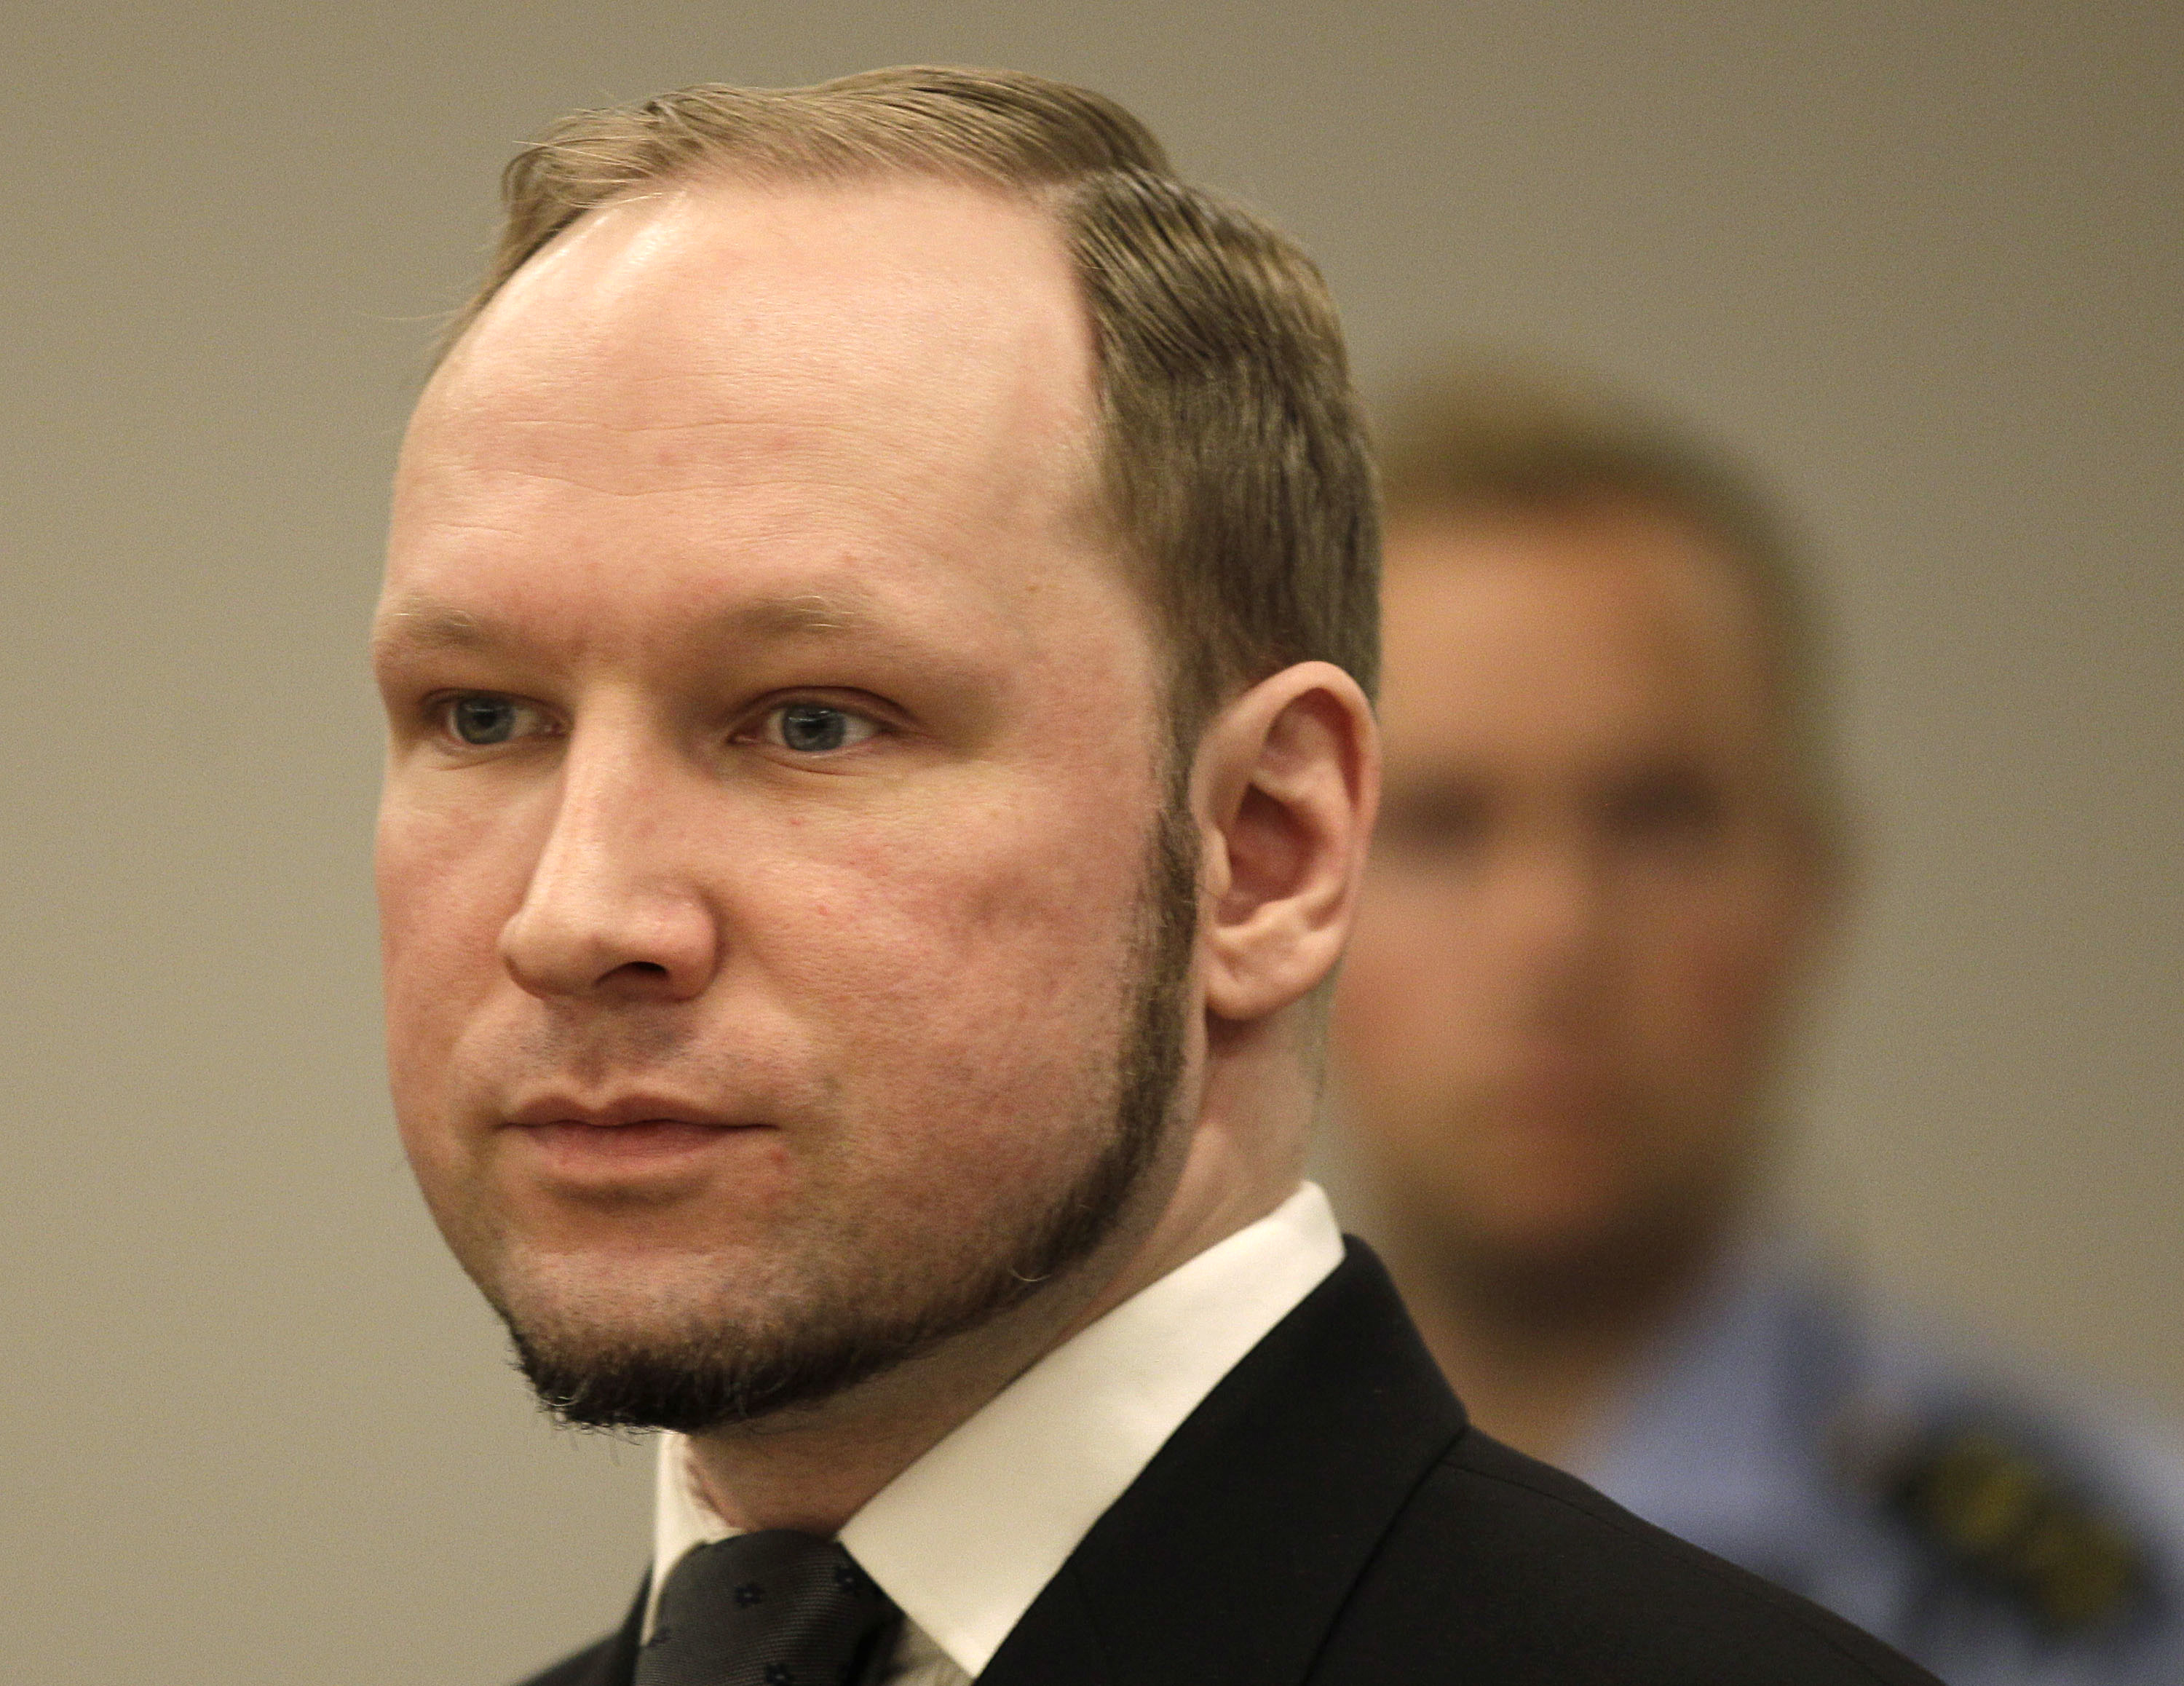 breivik3 Court Has Ruled Whether Anders Breivik Had Human Rights Violated